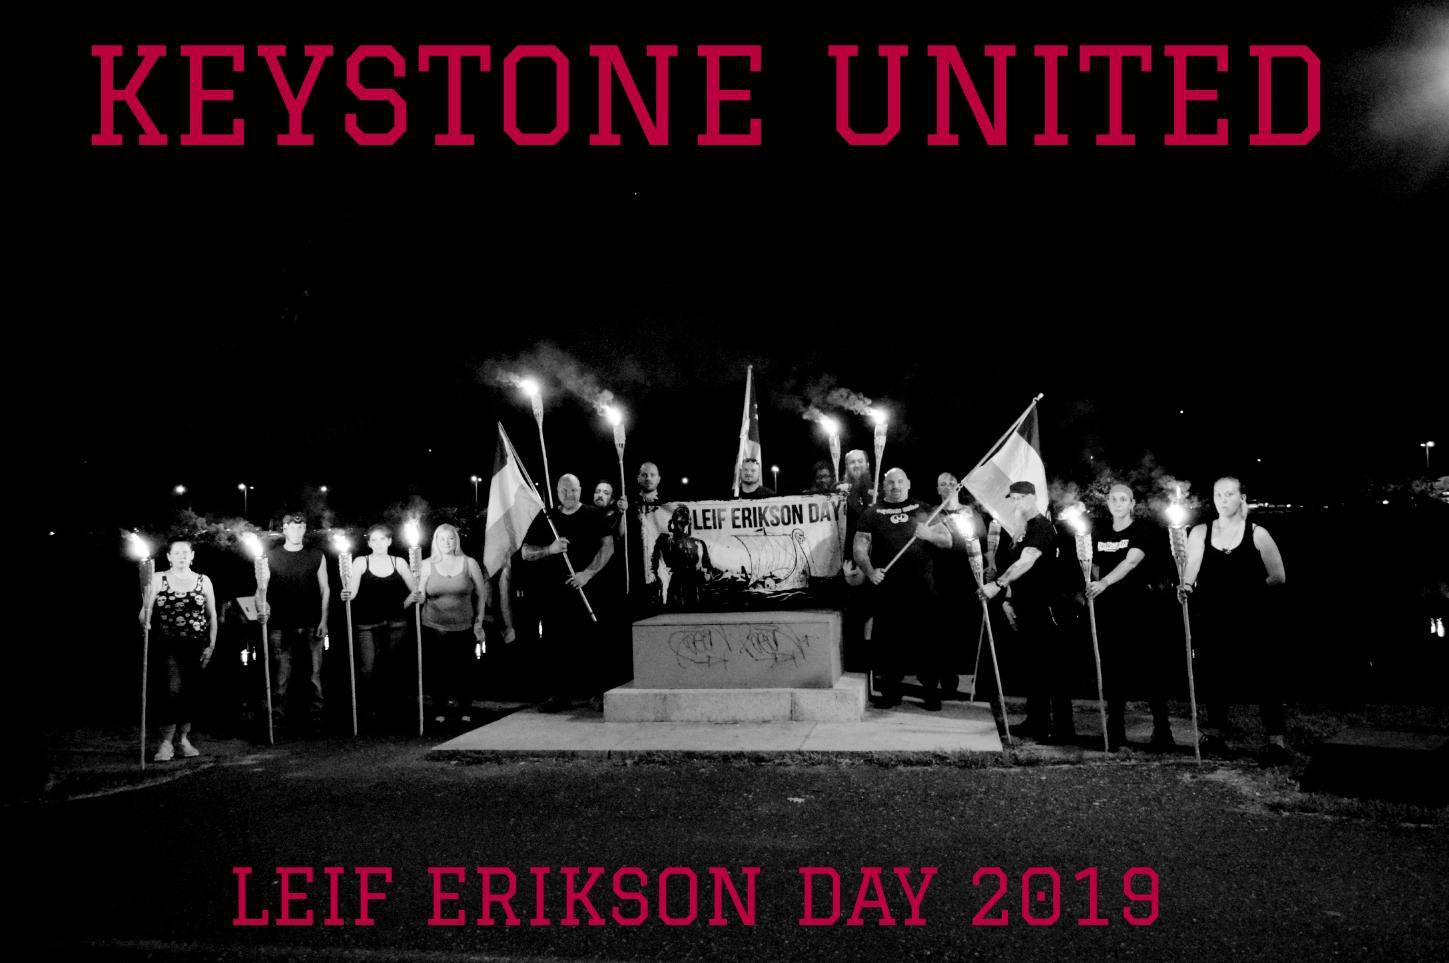 Keystone United Leif Erikson Day Celebration 2019